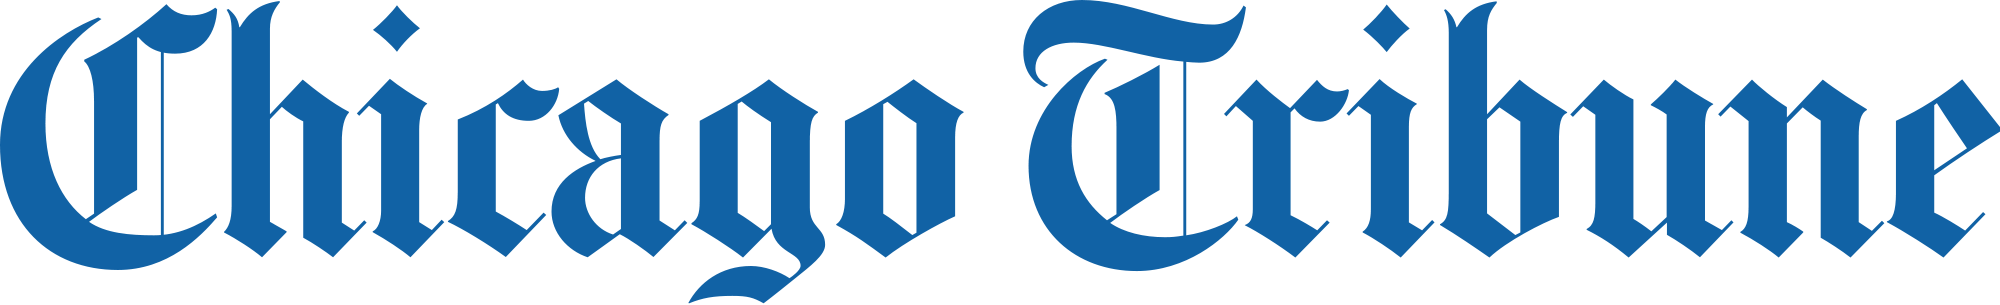 logo_chicago_tribune